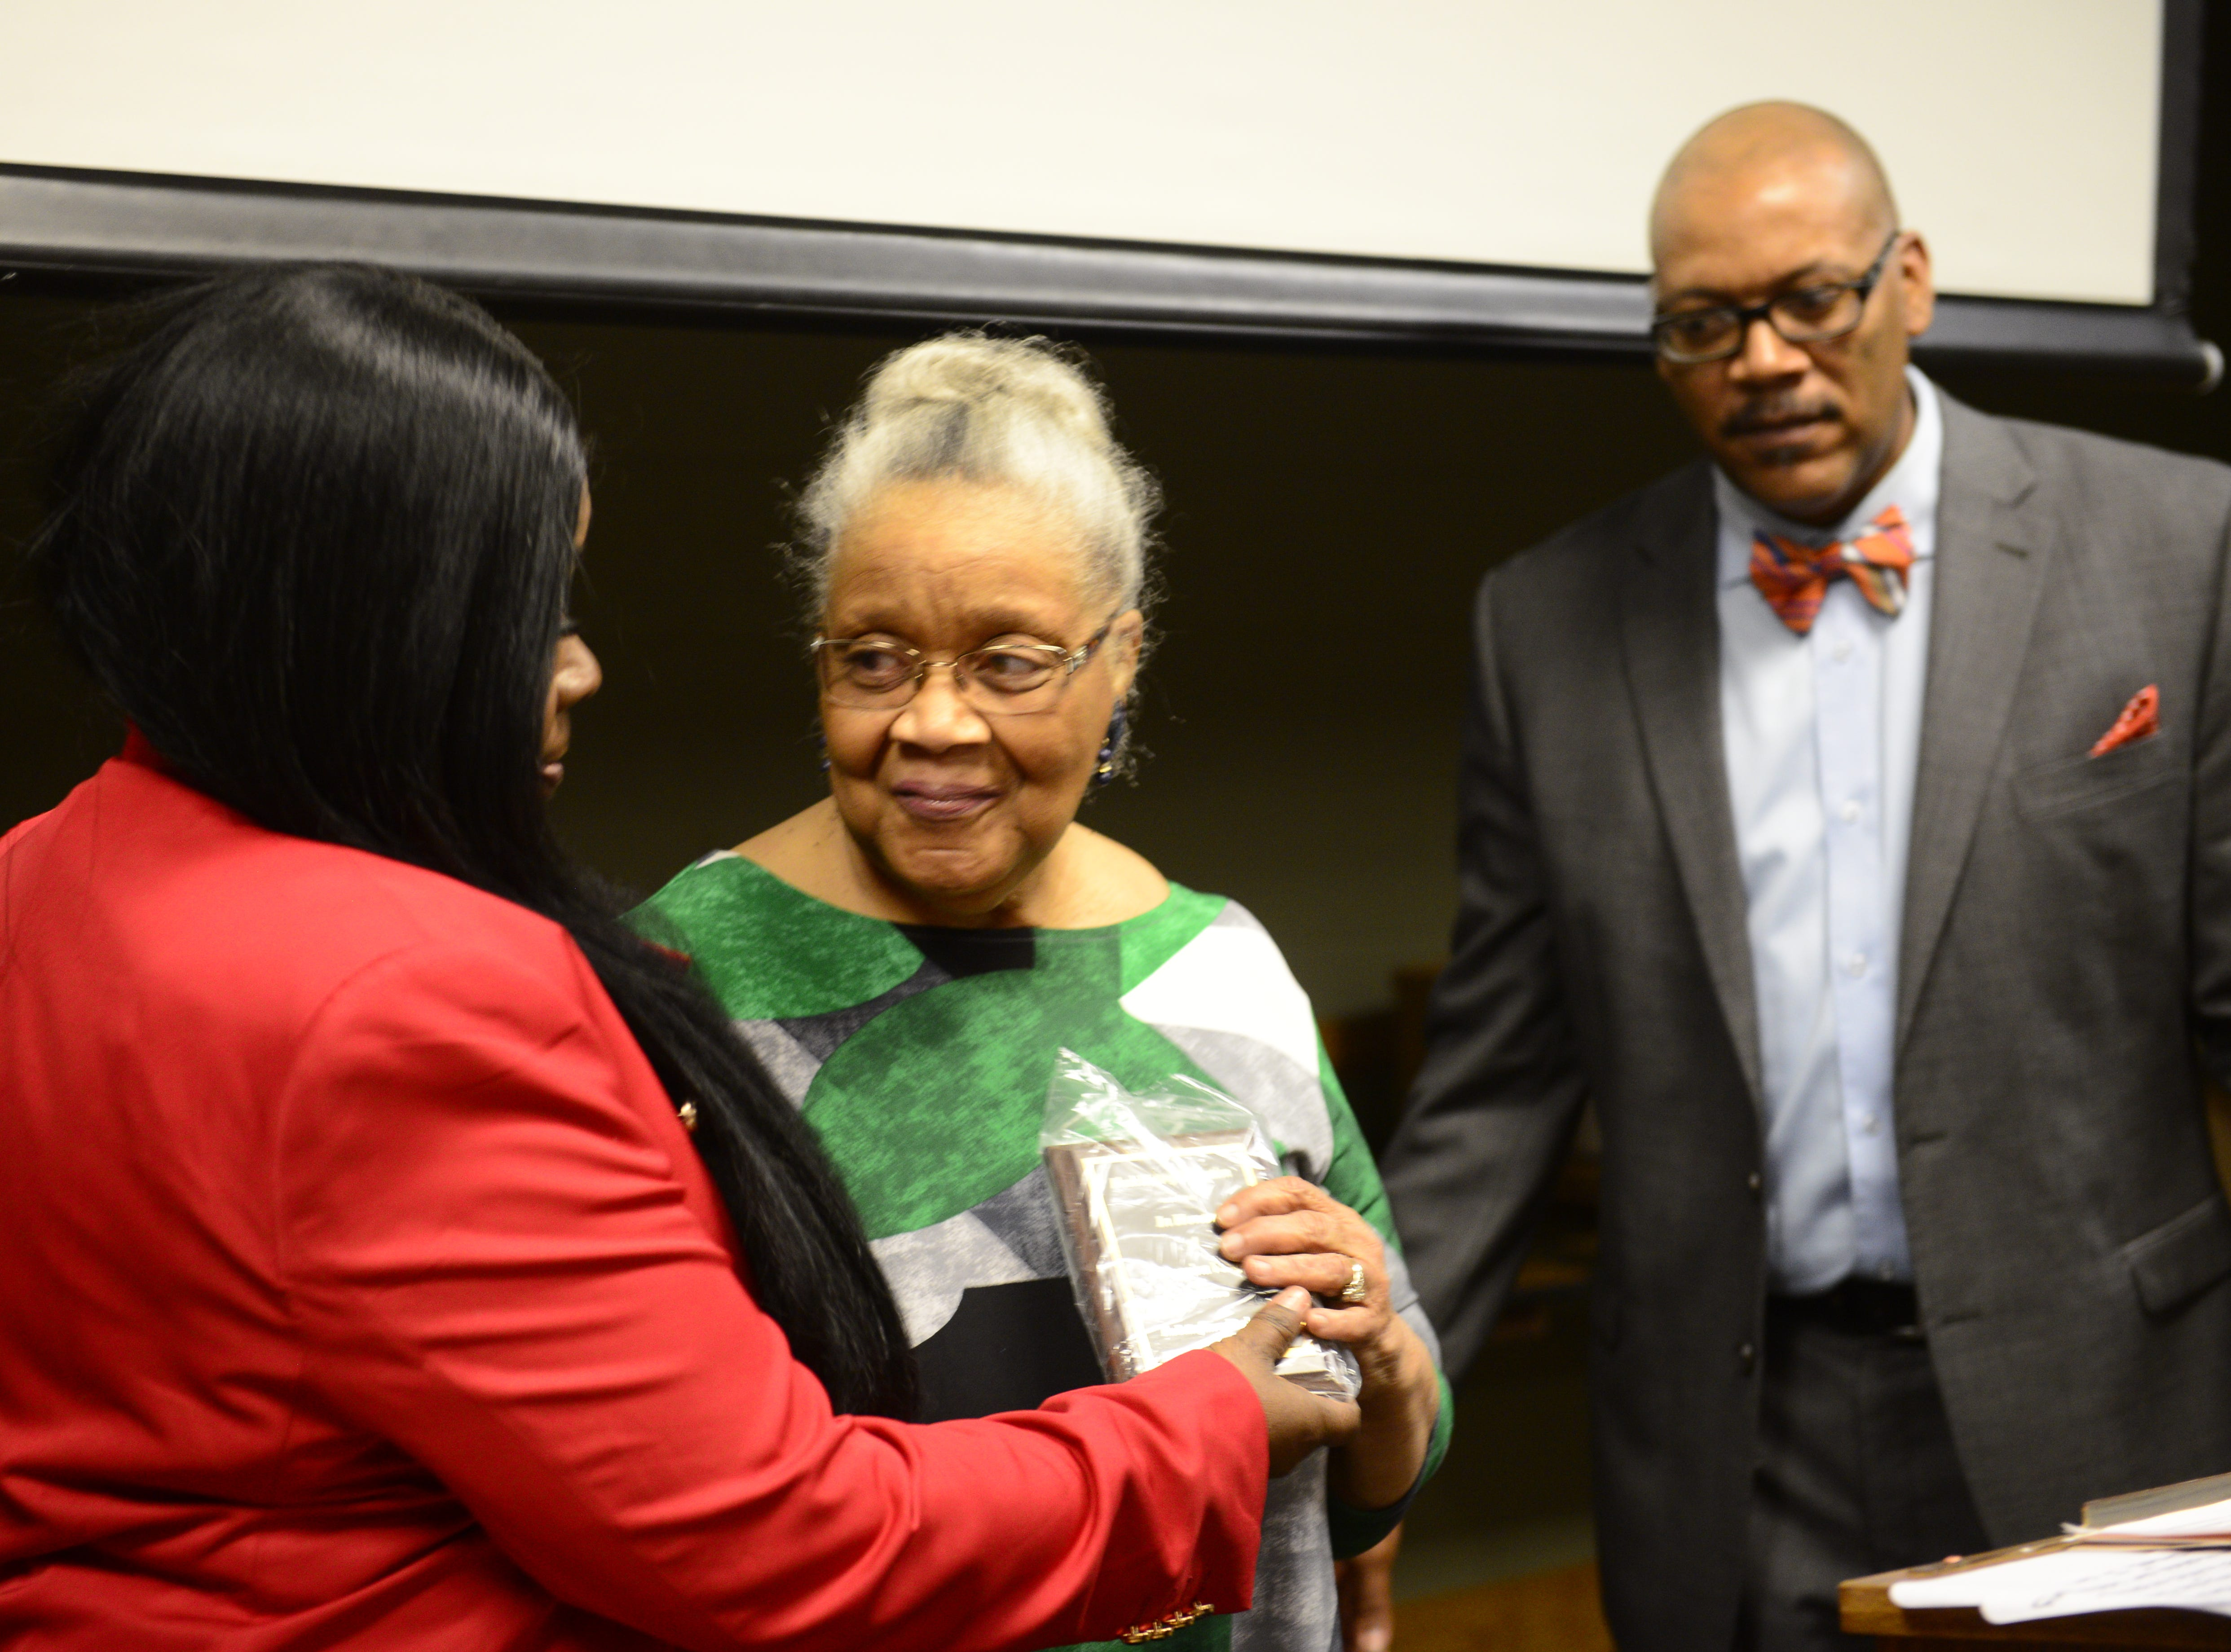 Angela Parks (left) gives Thomasina Vaught (center) her an award at the Jackson-Madison County Library in Jackson, Tenn. Feb. 27, 2019